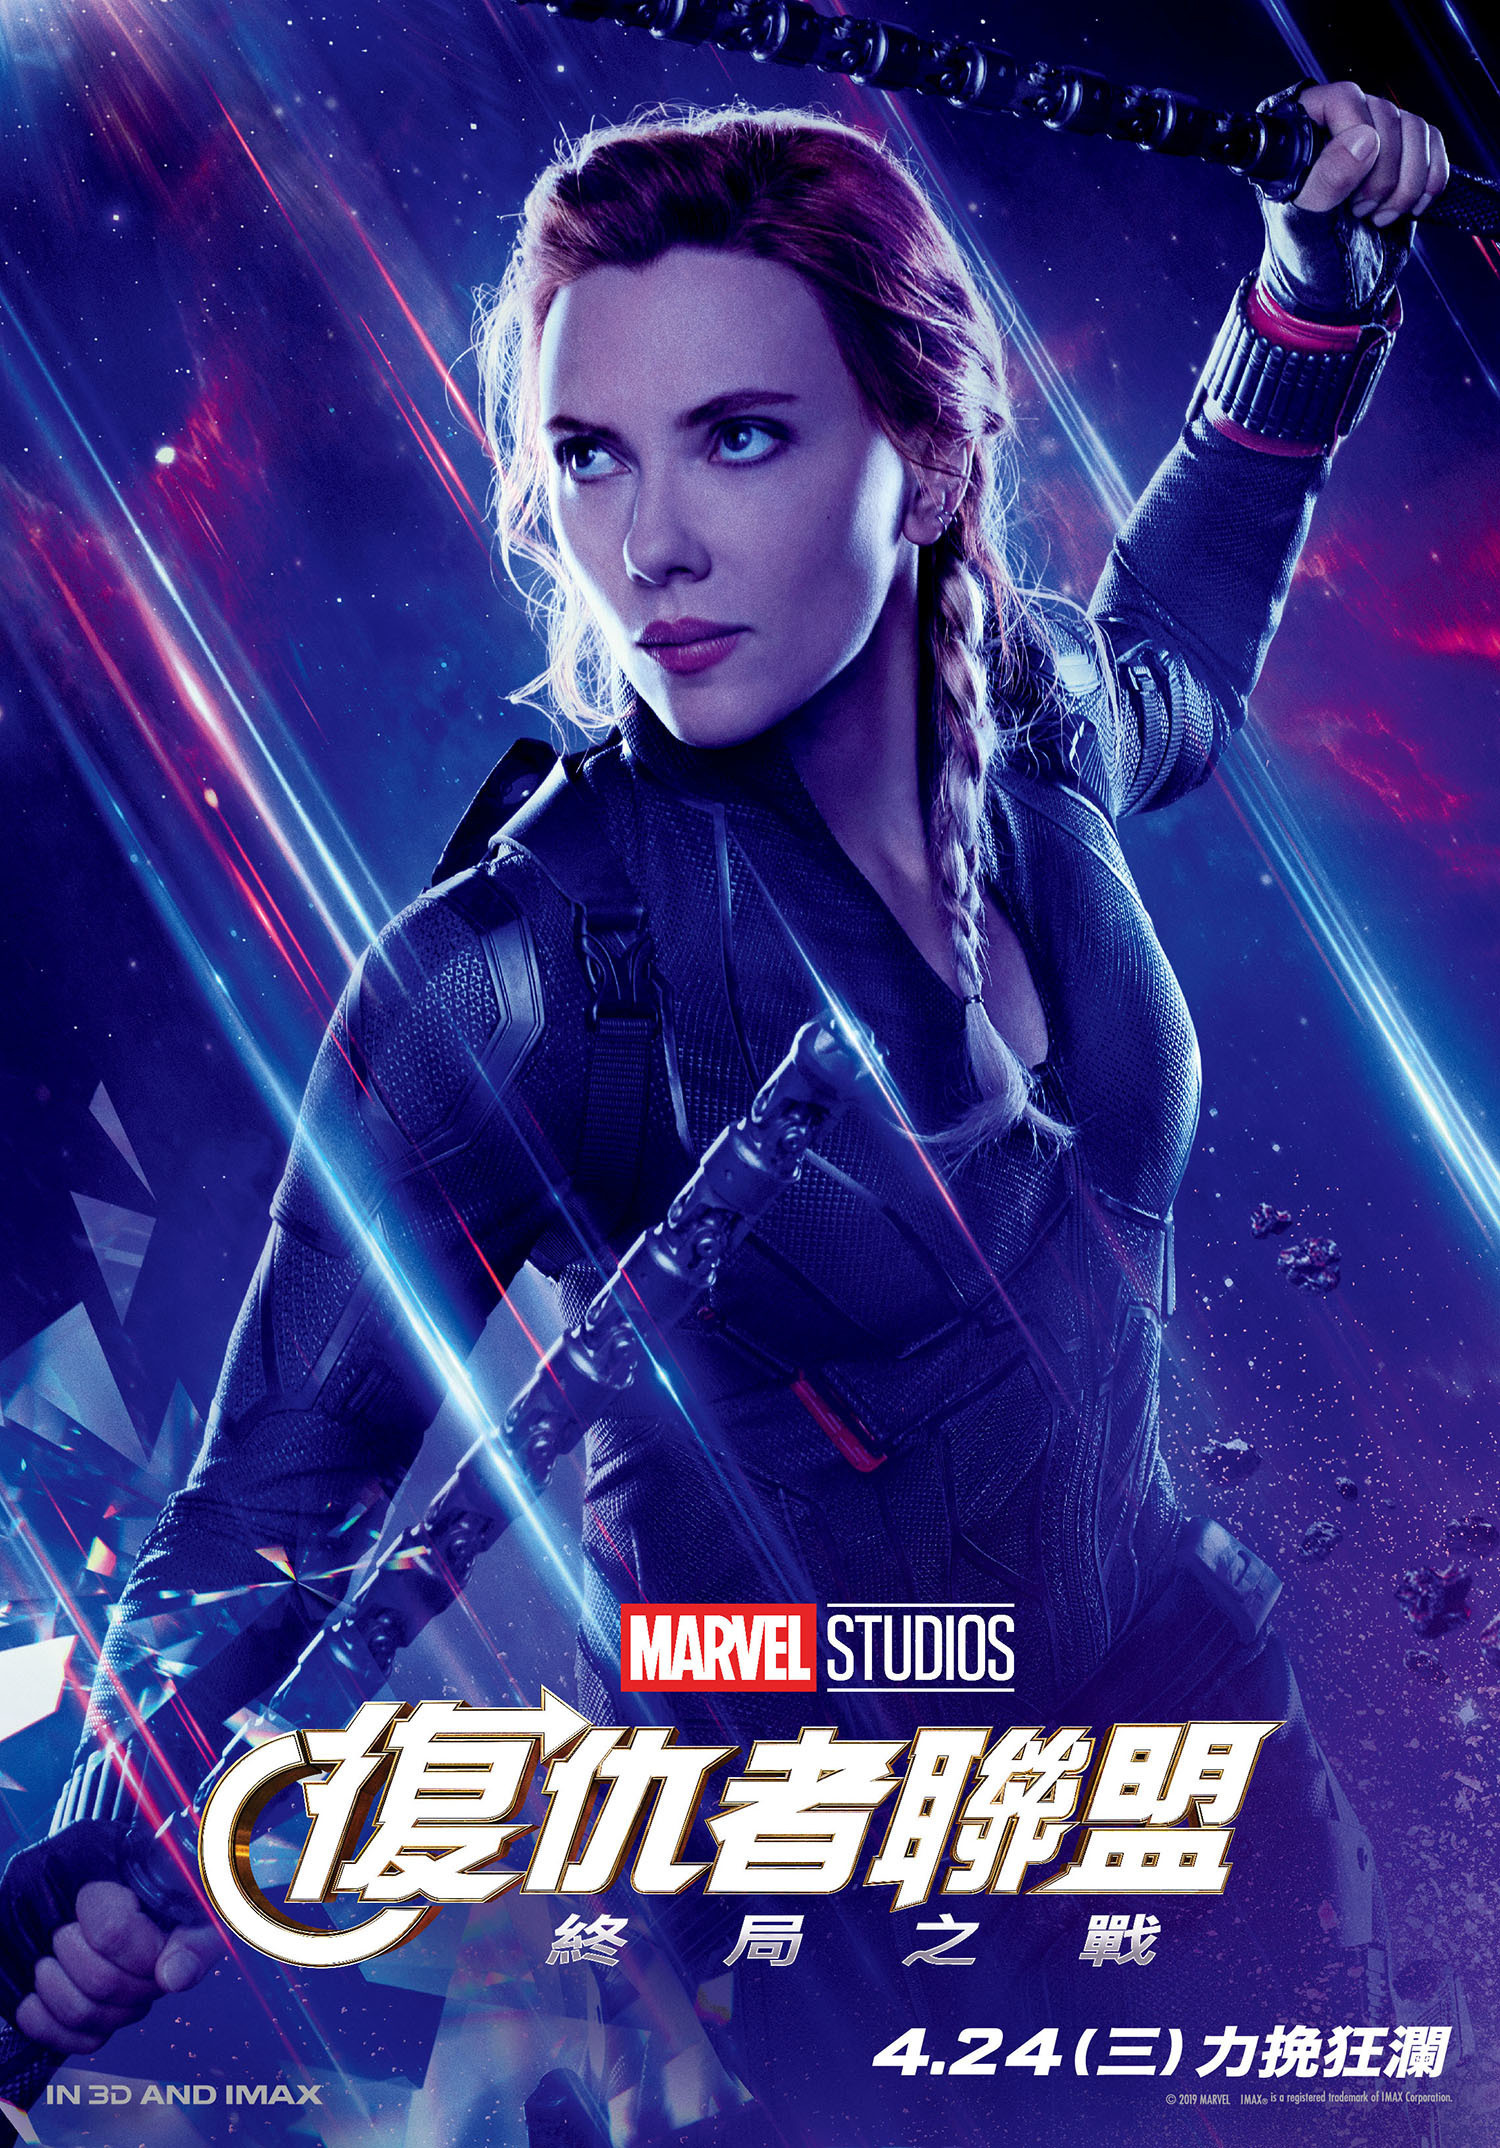 Avengers:End Game - Black Widow